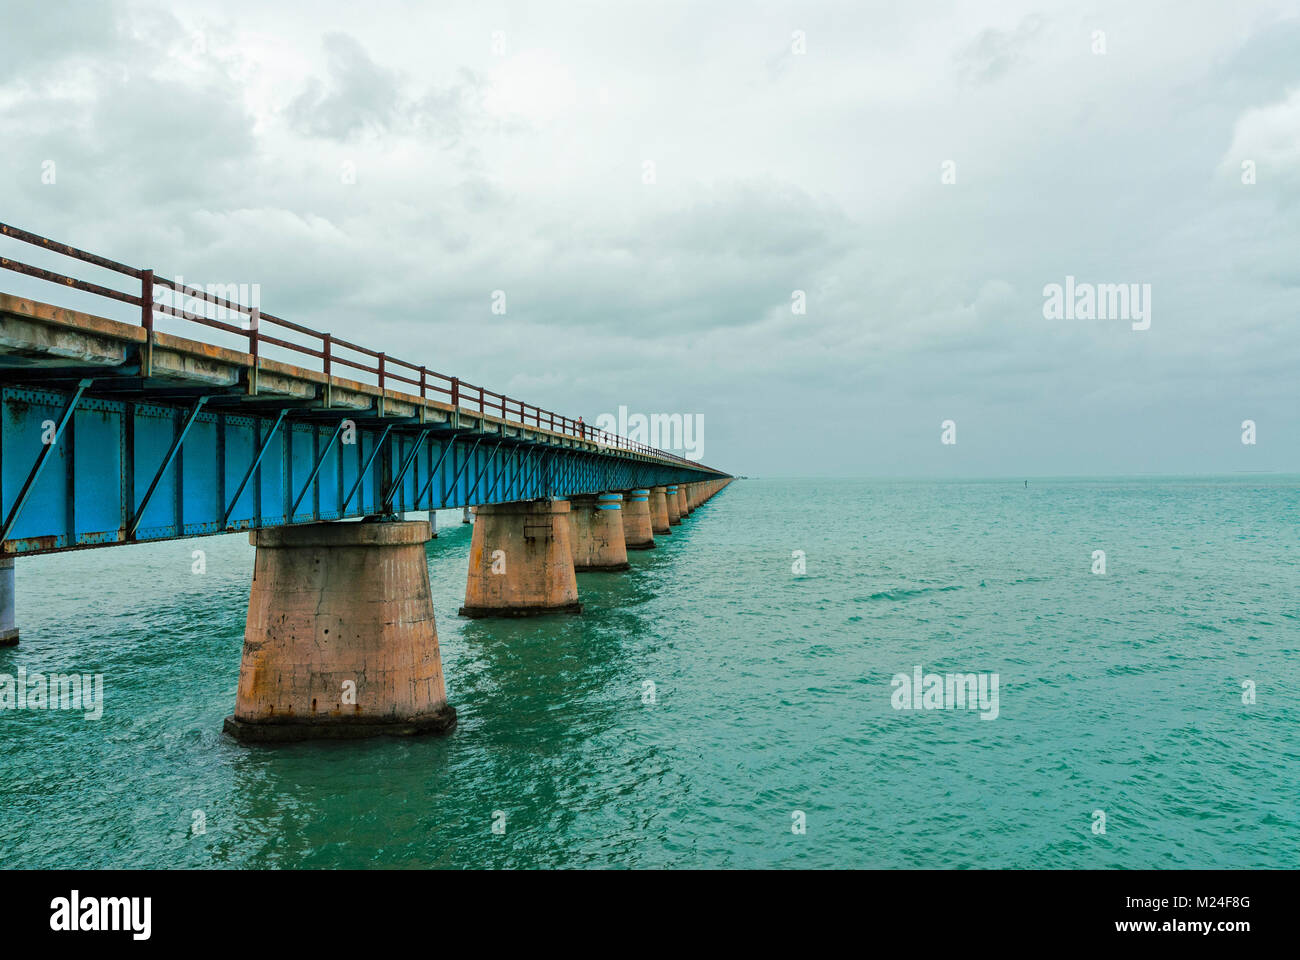 One of he bridges spanning the gulf of Mexico between the Florida Keys - Stock Image